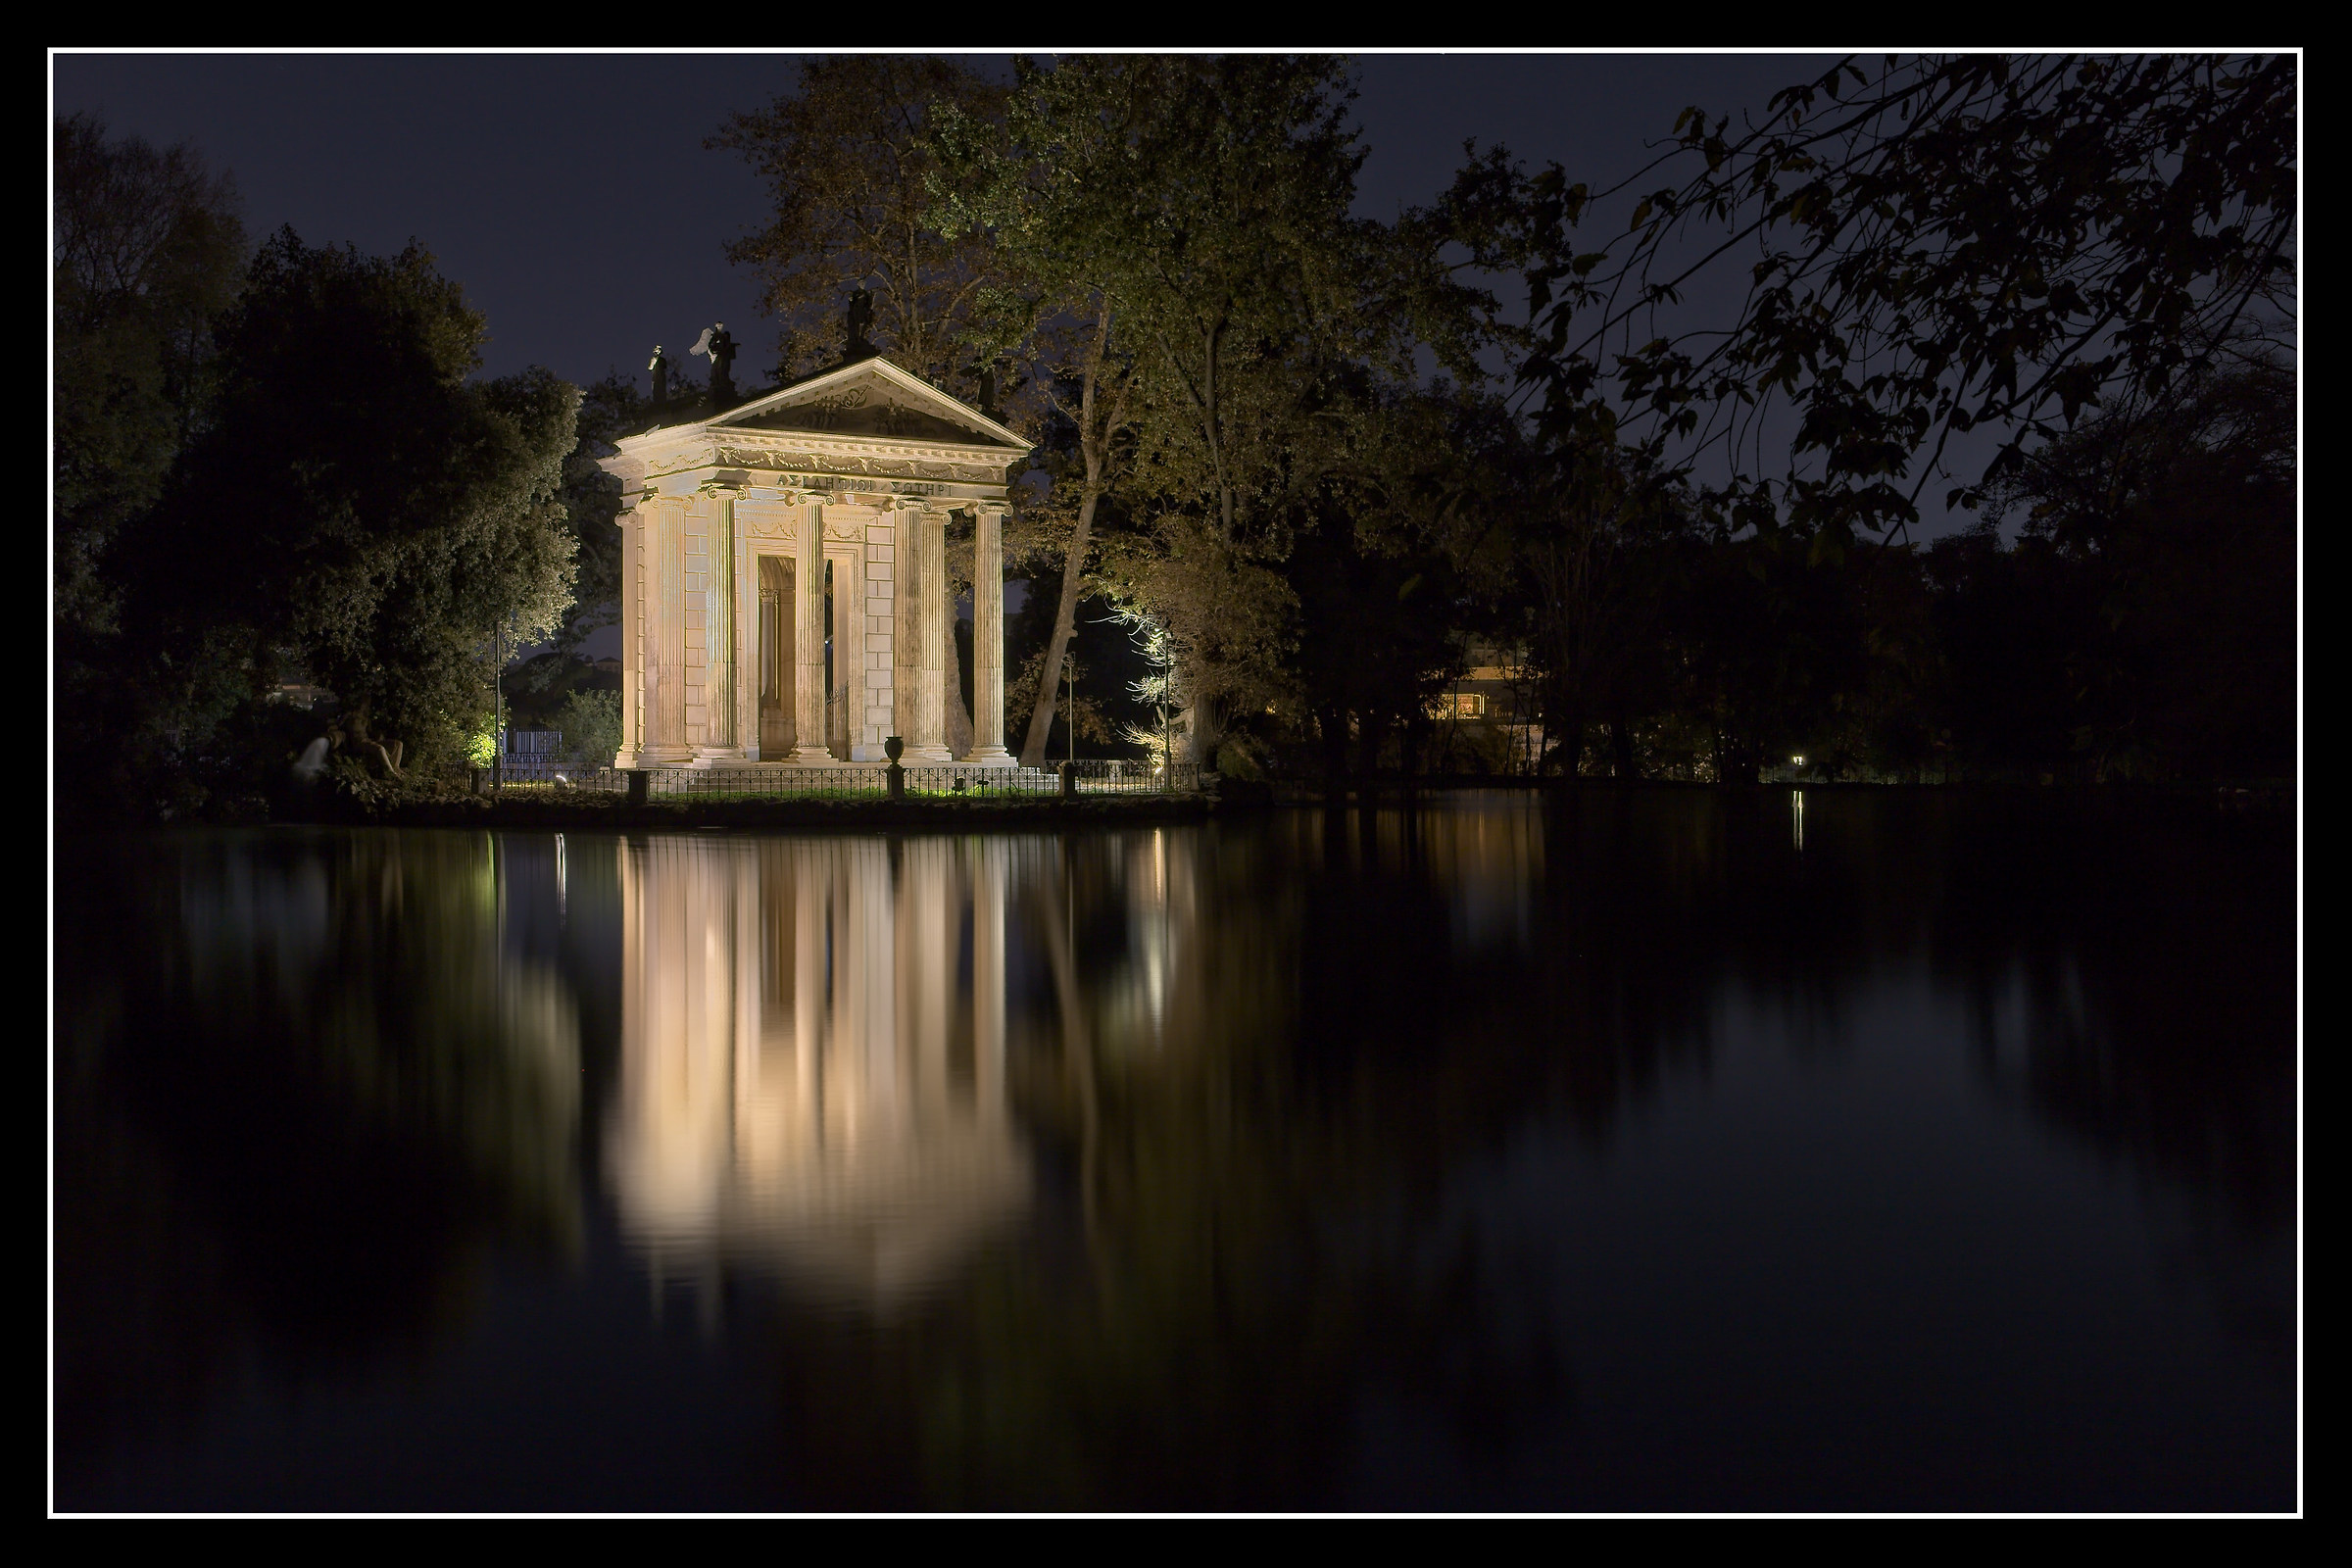 Temple of Aesculapius at Villa Borghese at night...